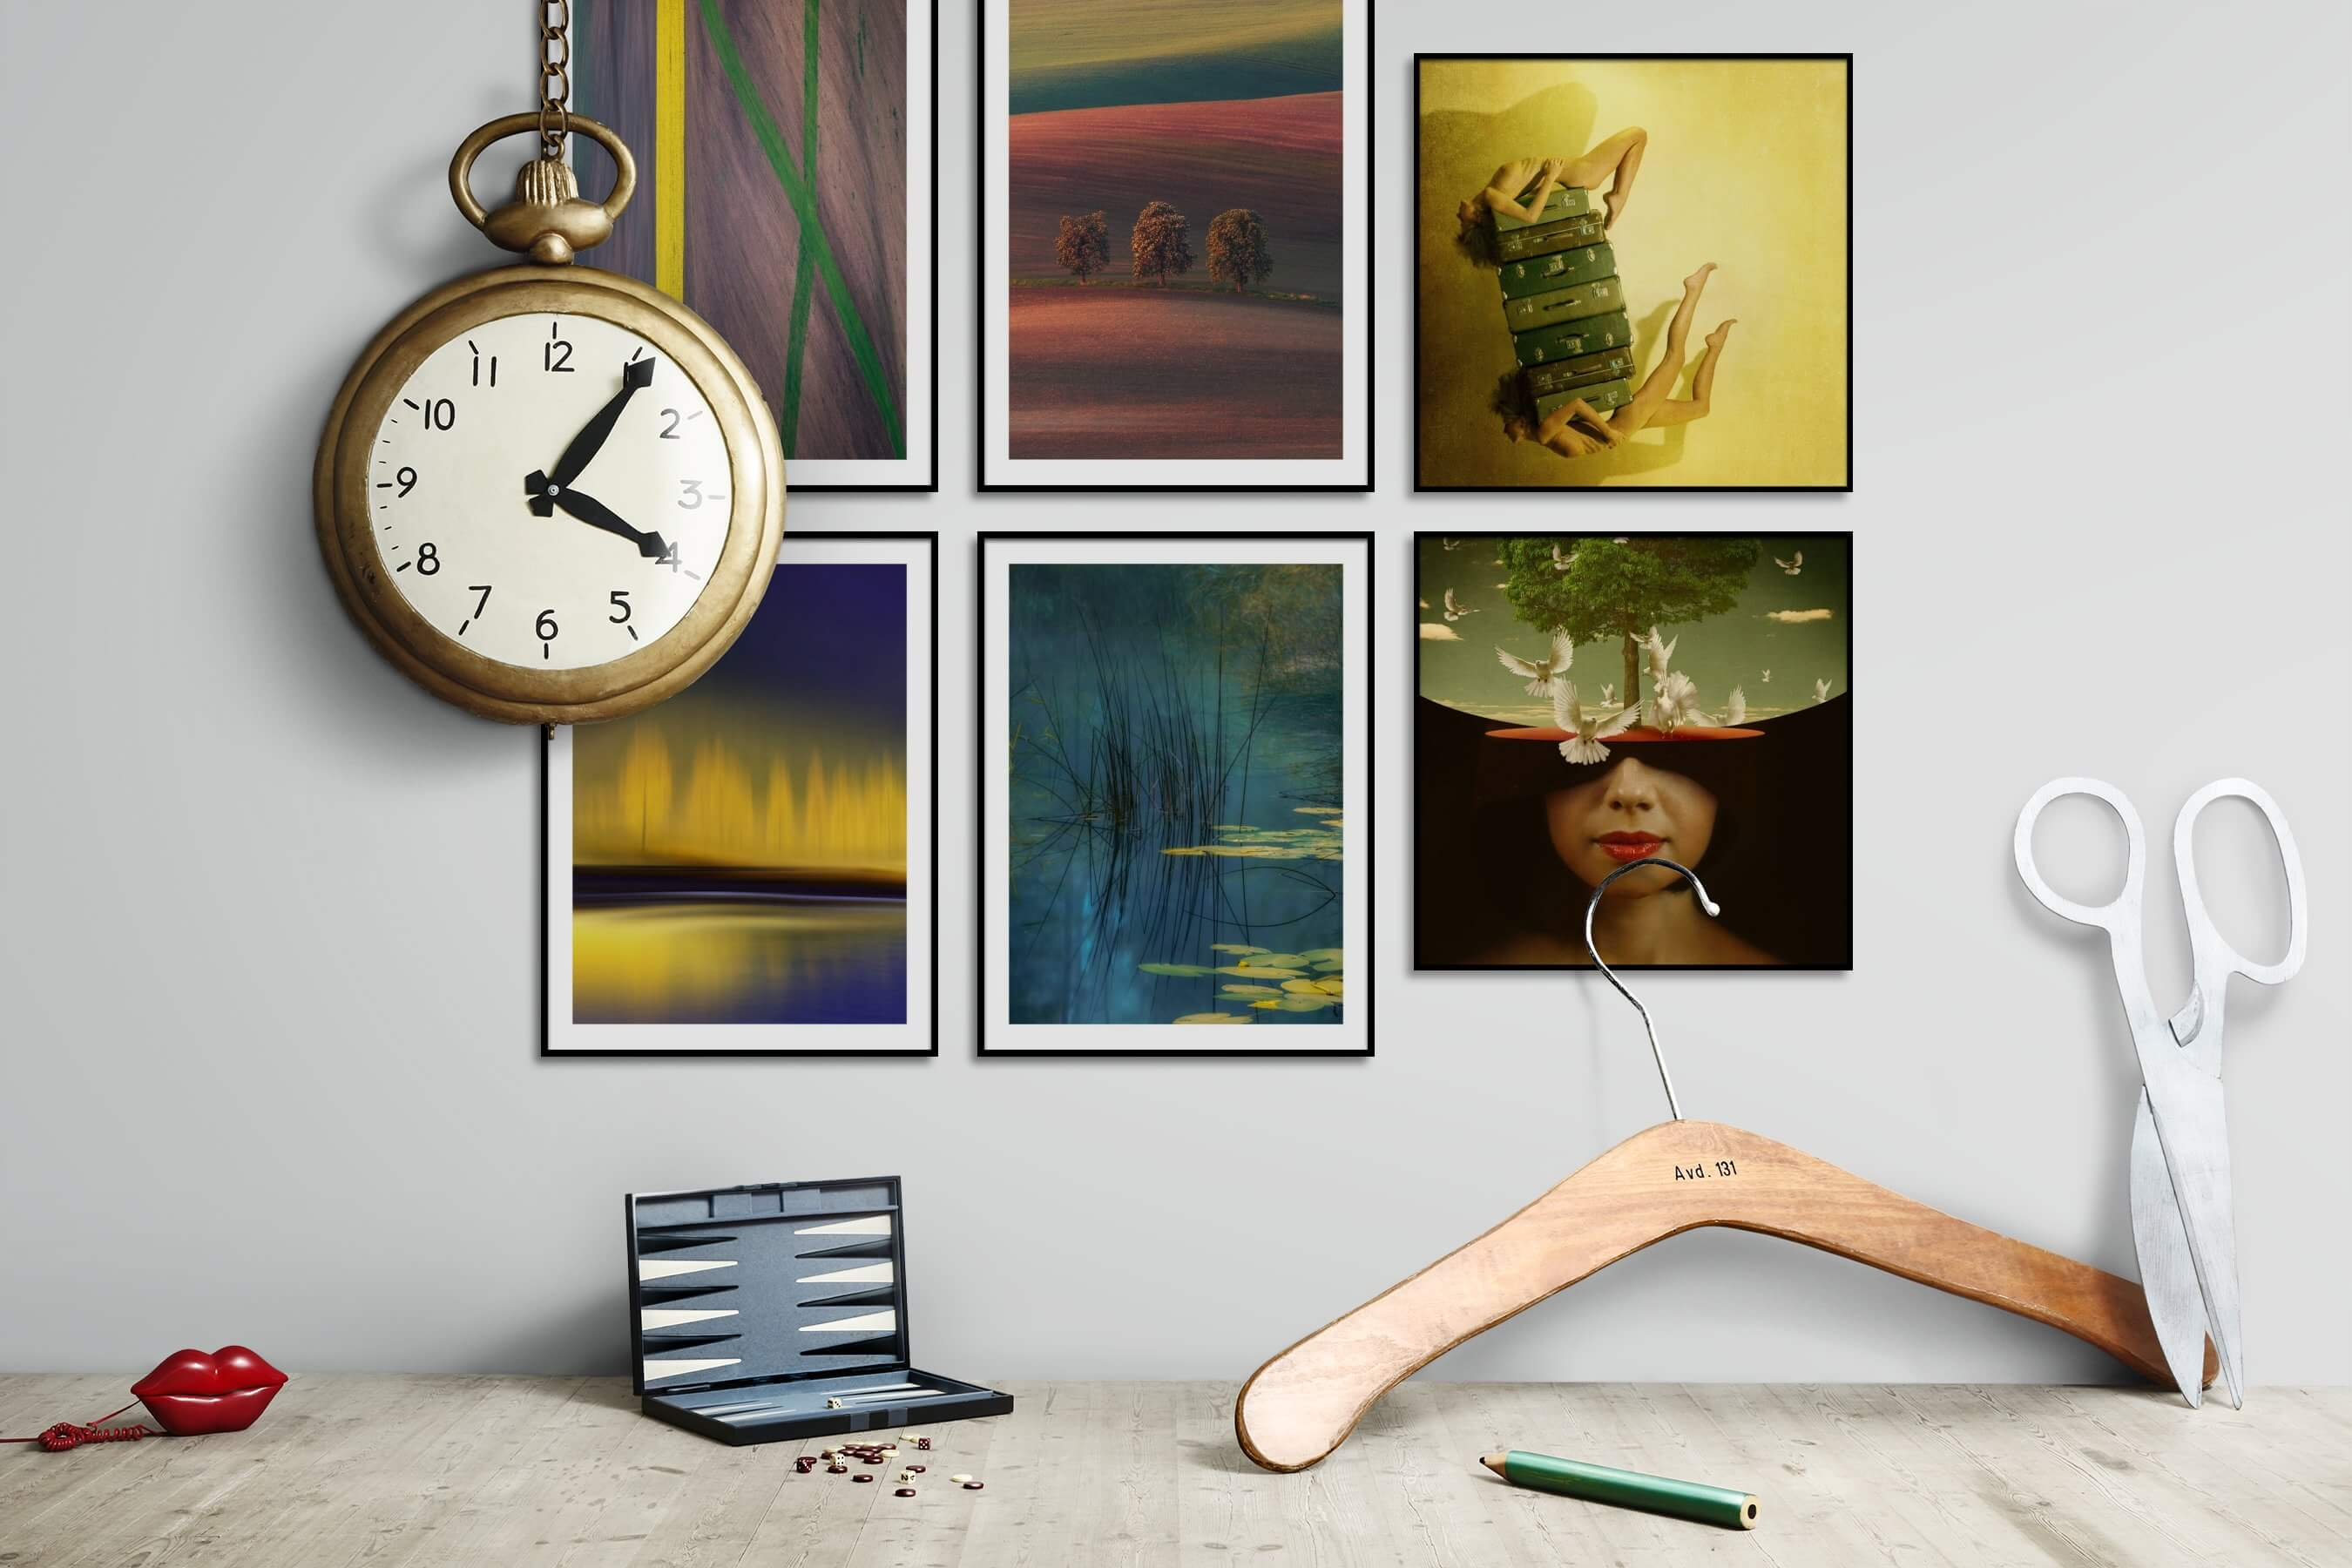 Gallery wall idea with six framed pictures arranged on a wall depicting Country Life, For the Moderate, Nature, Artsy, Bold, and Dark Tones